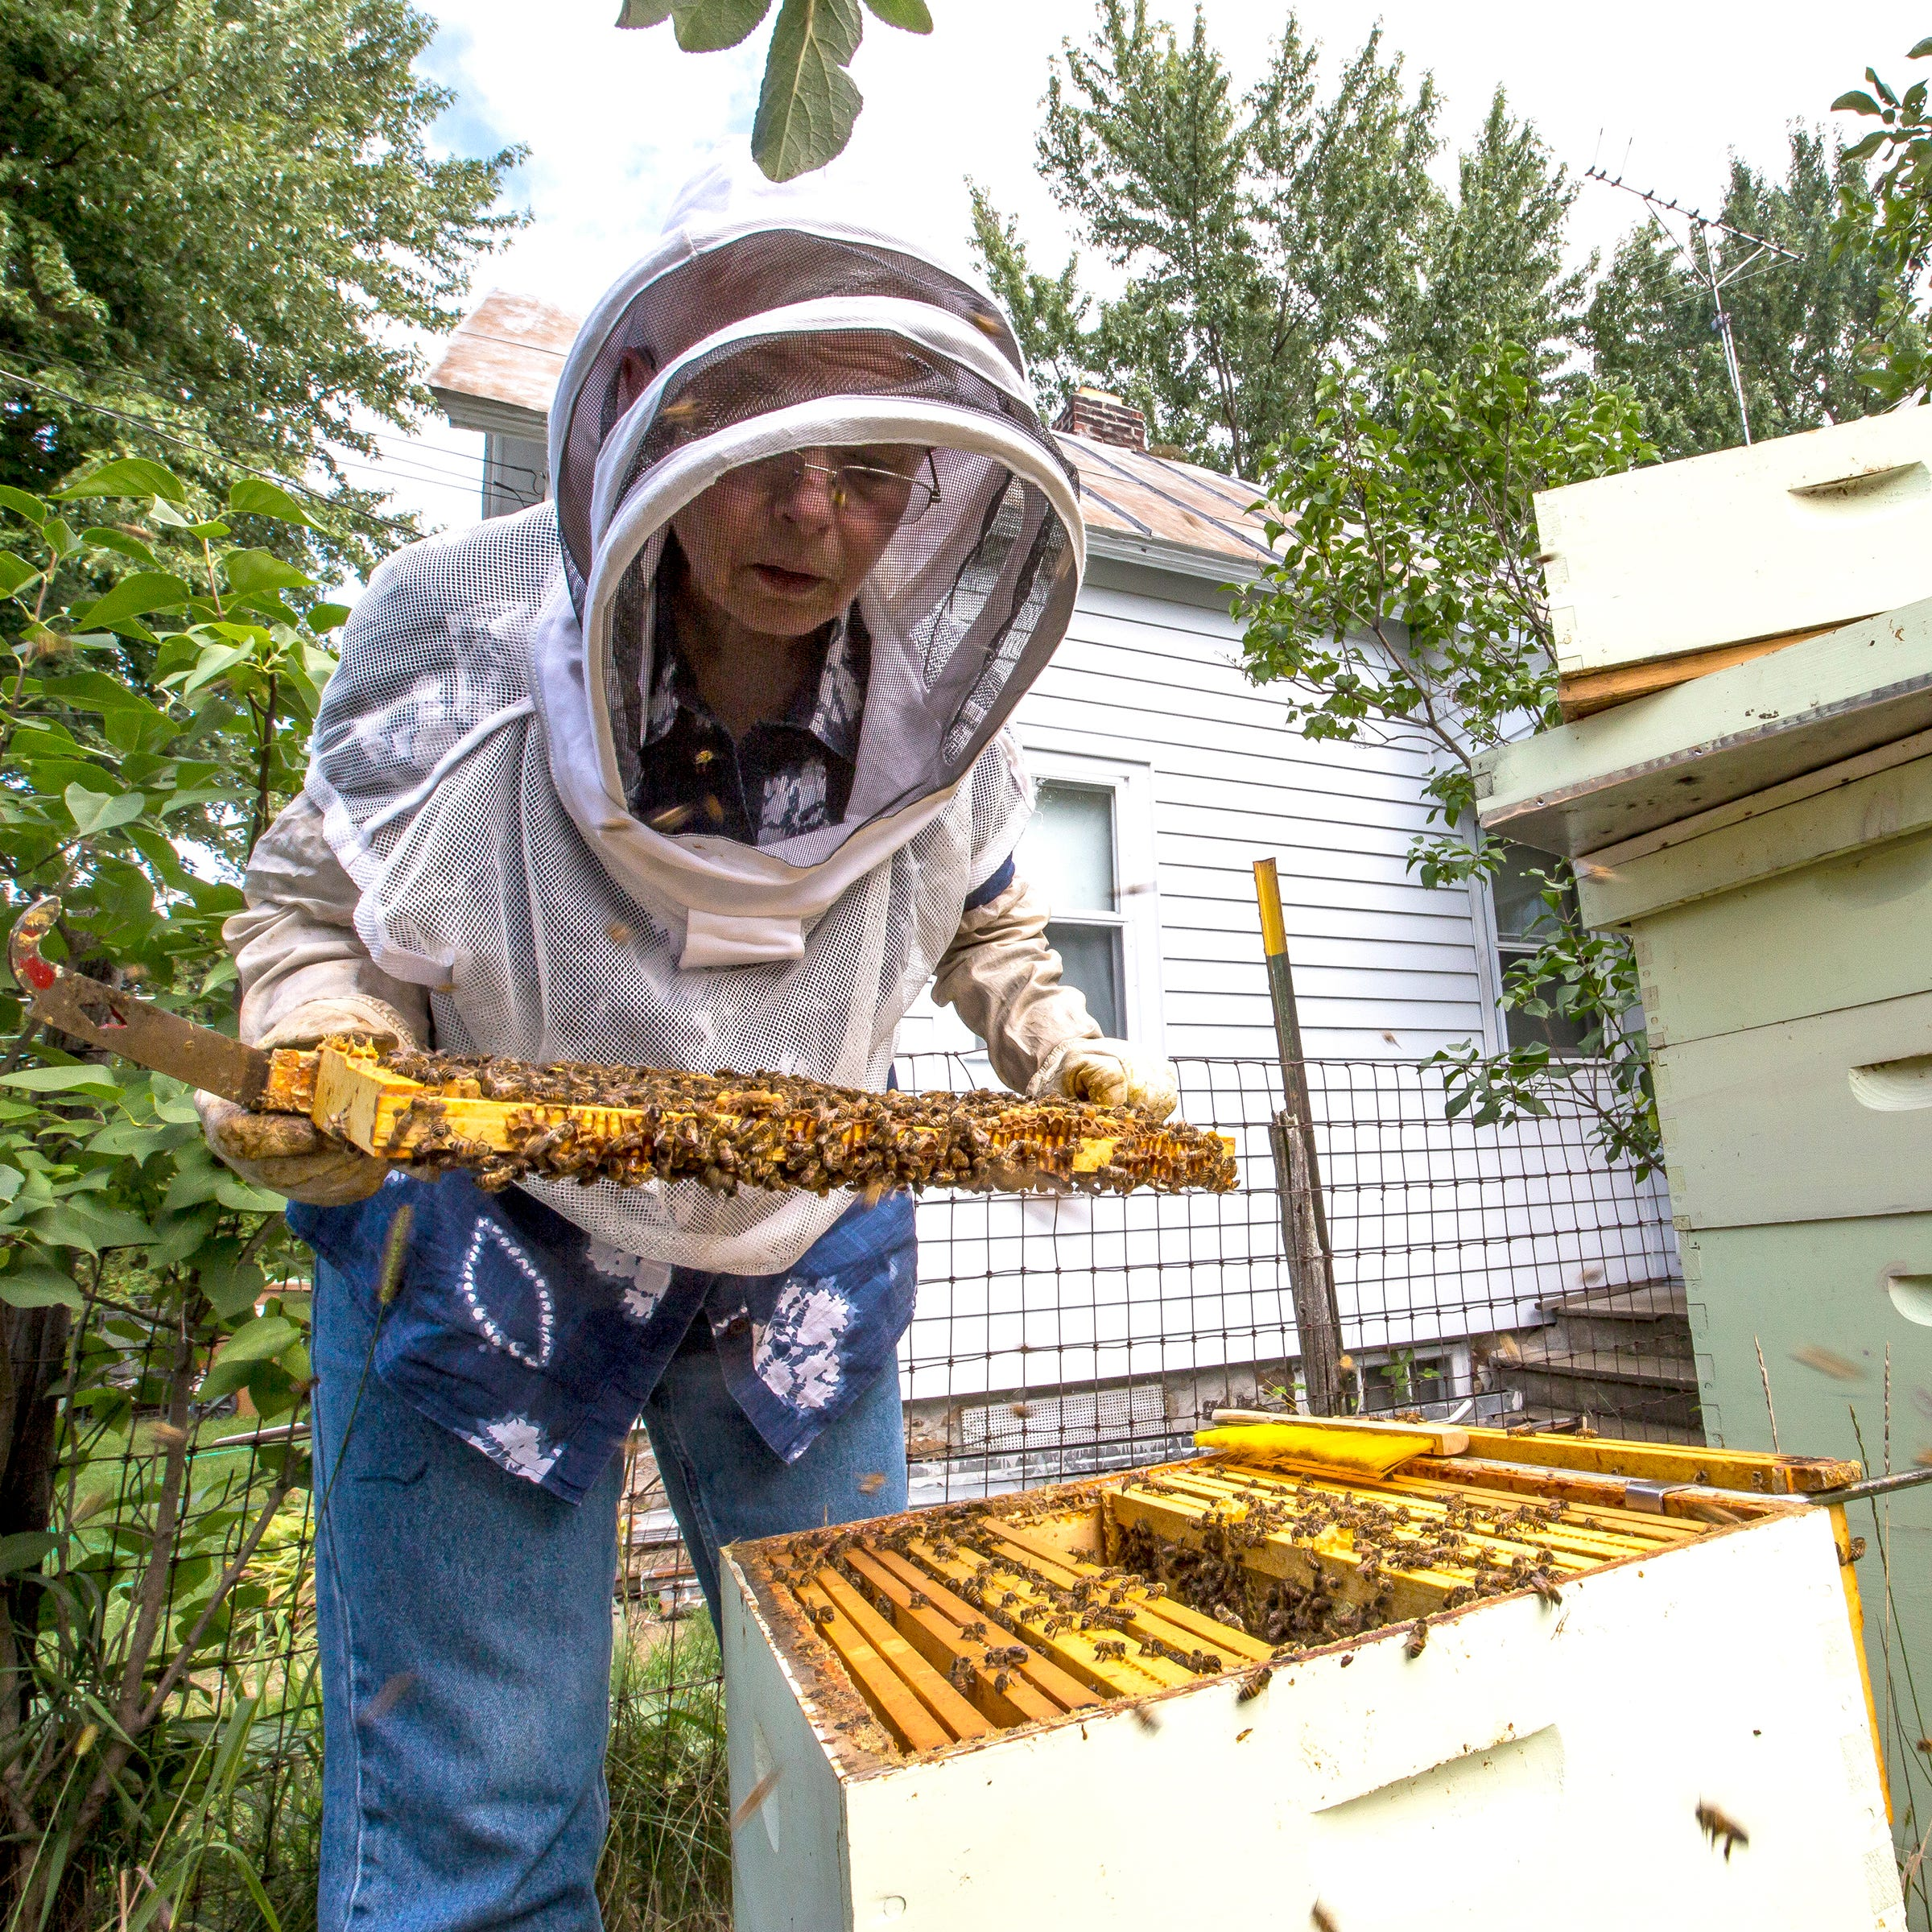 'Those are good neighbors': Request to keep bees prompts Stevens Point to weigh ordinance